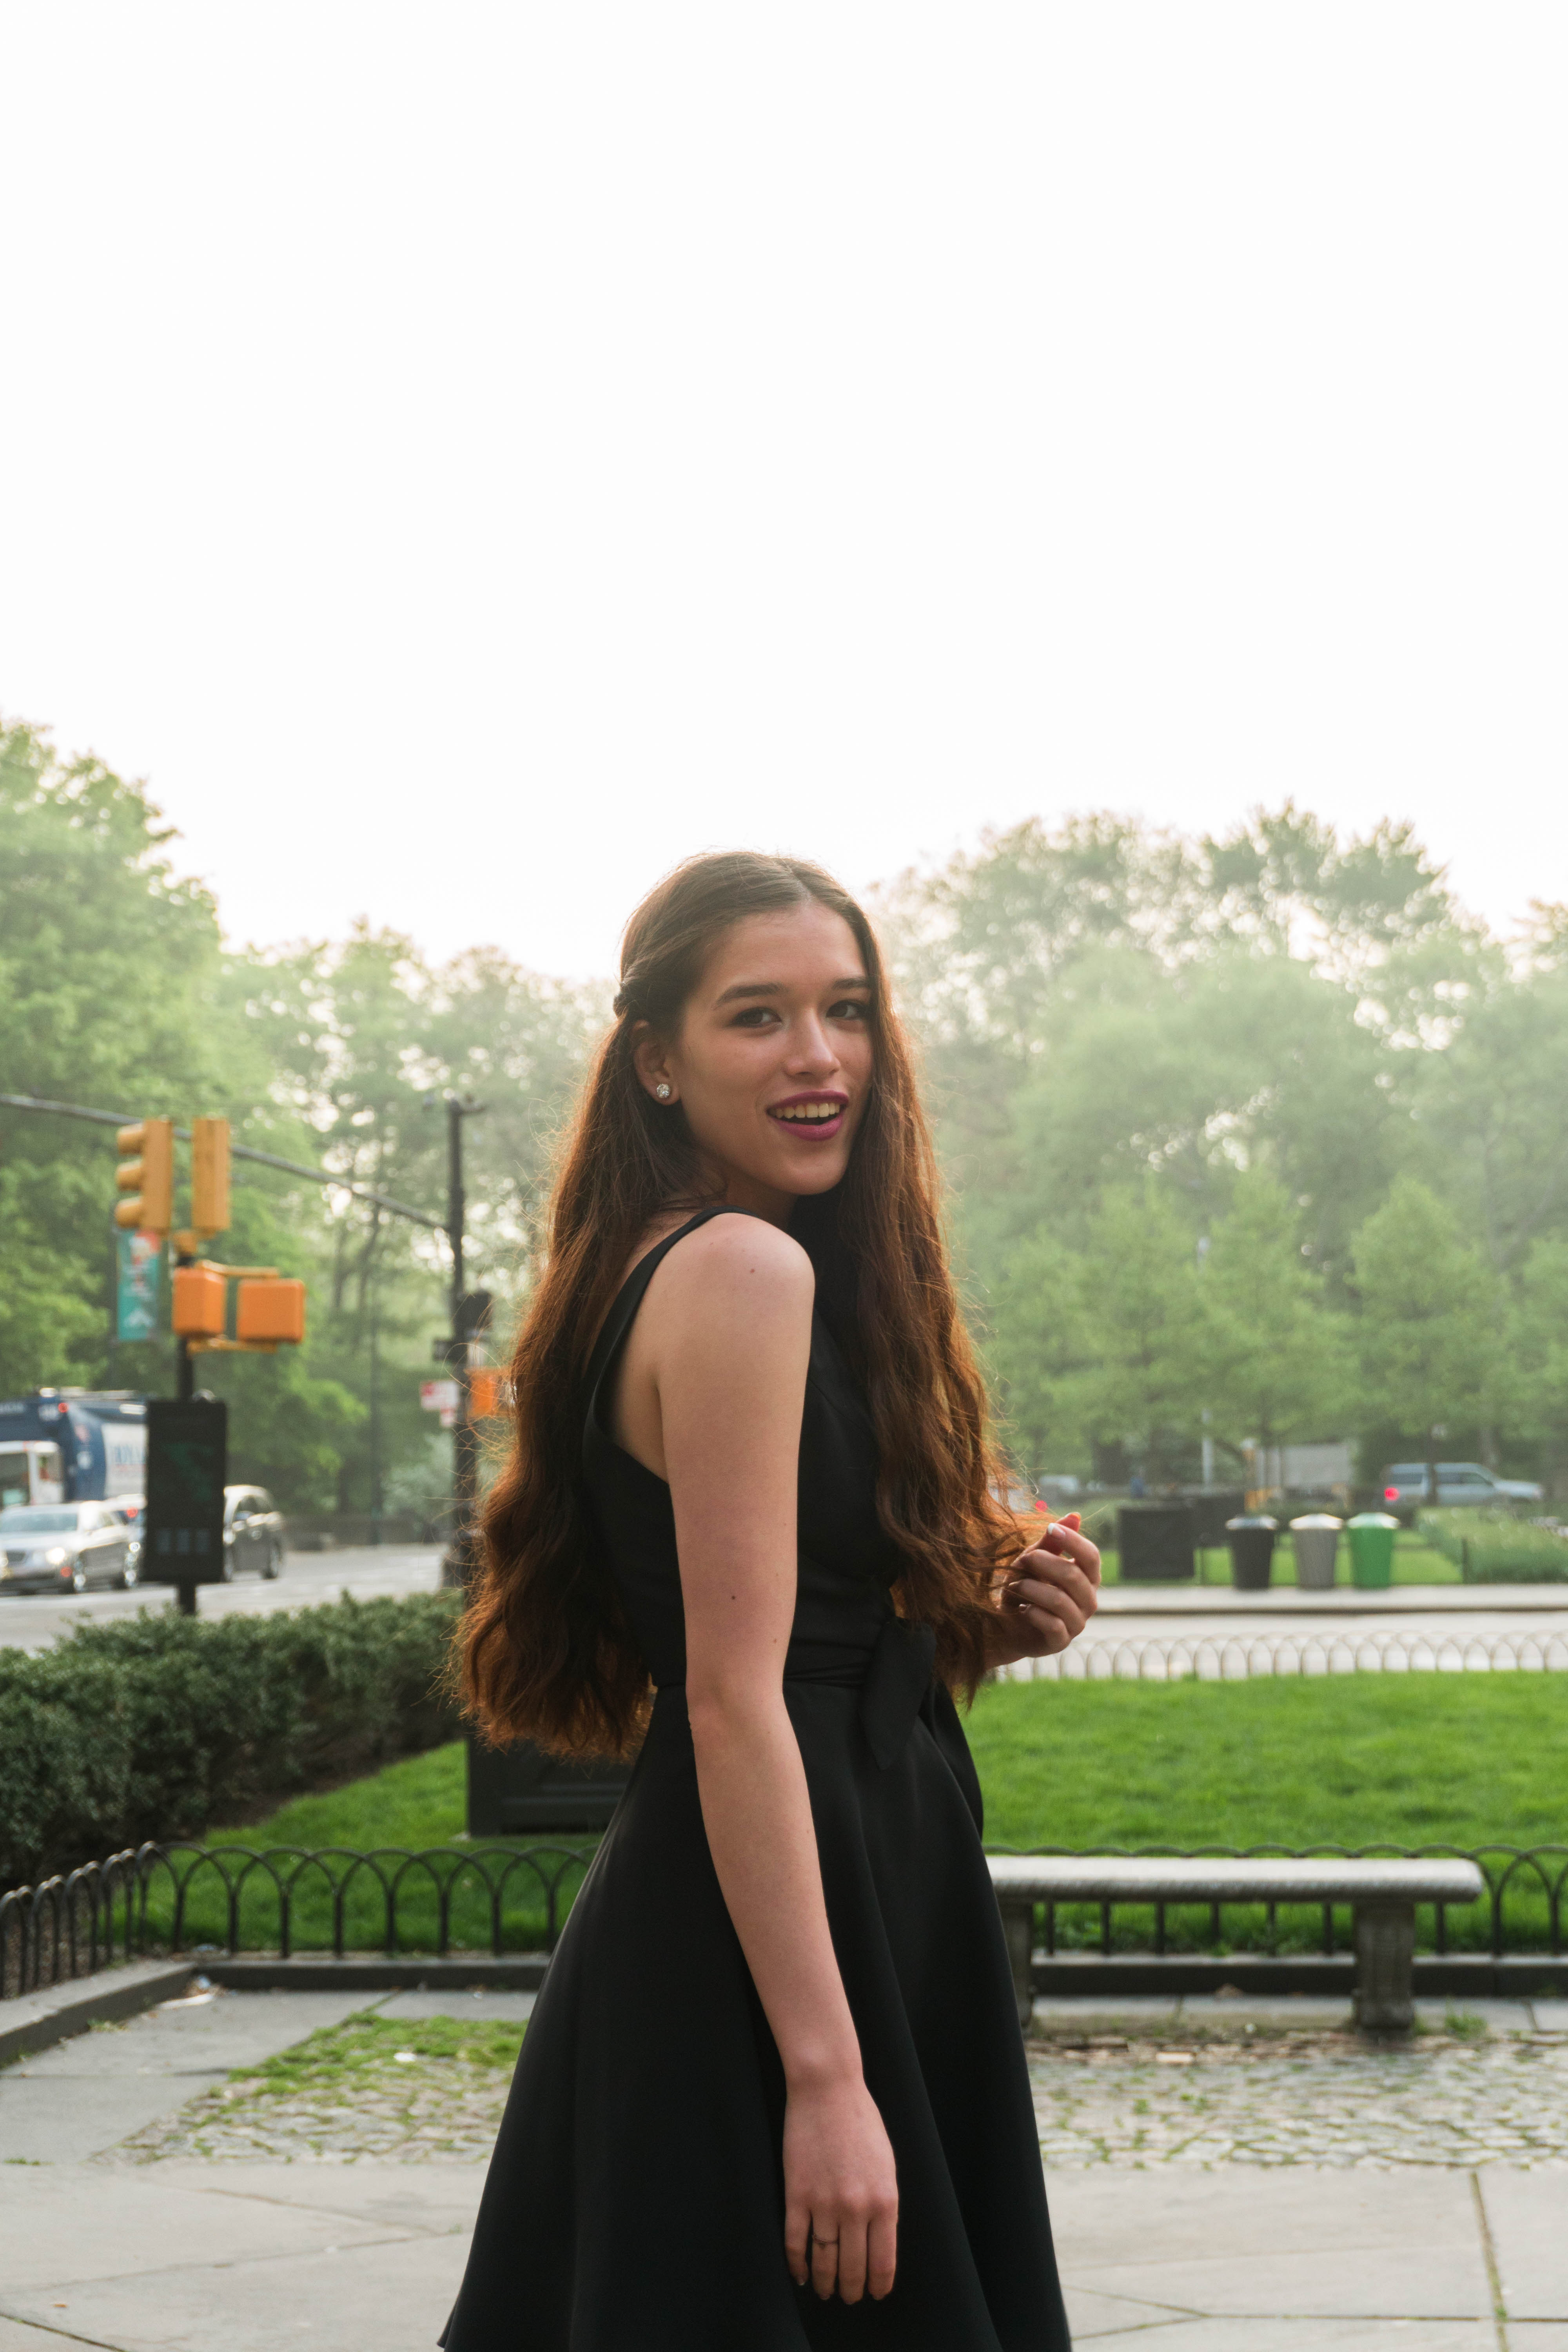 Amanda Uprichard little black dress classic style in NYC New York City Manhattan Central Park by the Plaza Hotel teenager teen girl woman with long brown wavy hair loose curls summer wedding guest style silk black sundress